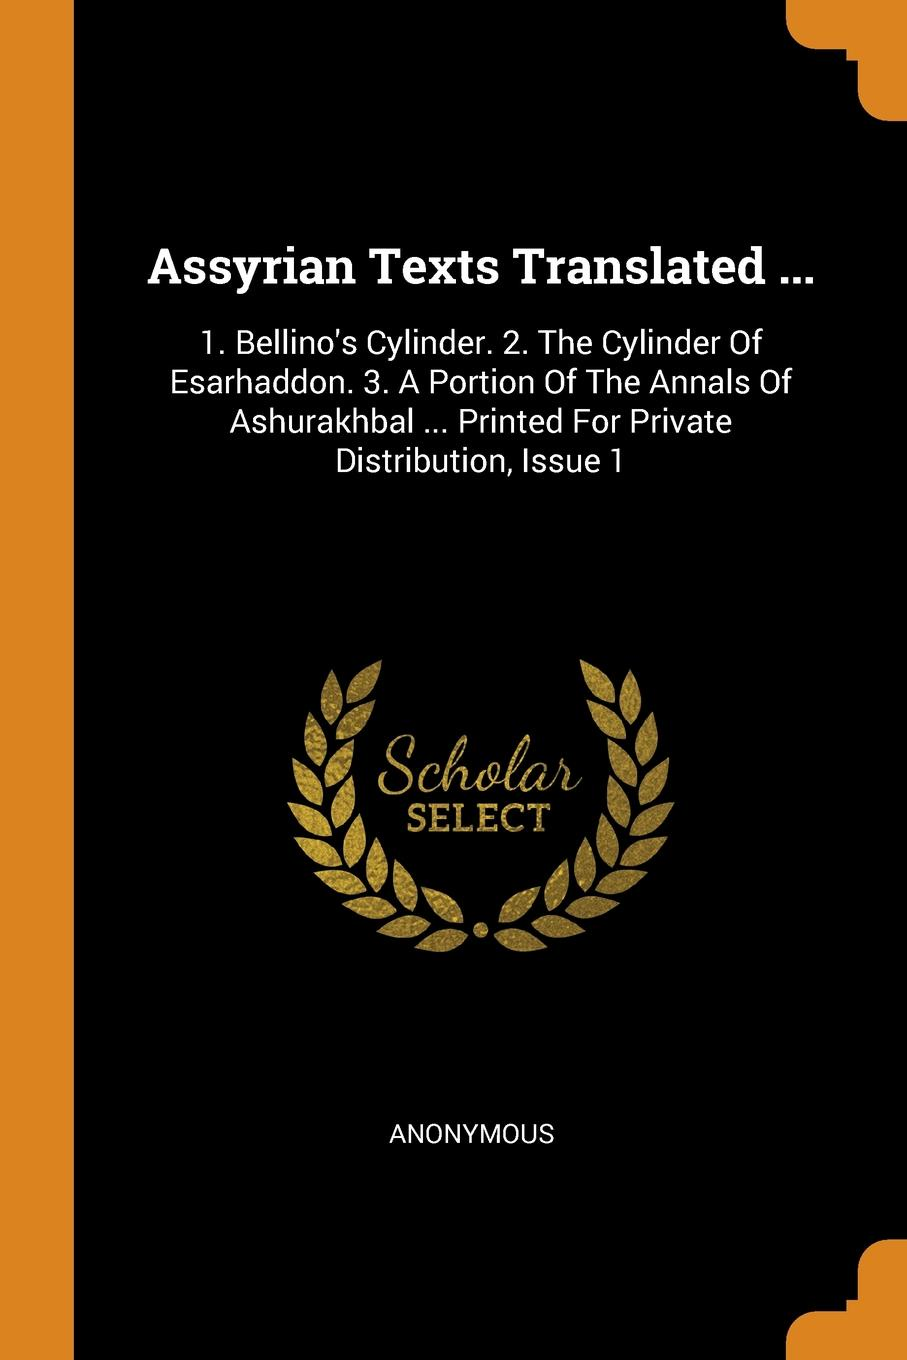 Assyrian Texts Translated ... 1. Bellino.s Cylinder. 2. The Cylinder Of Esarhaddon. 3. A Portion Of The Annals Of Ashurakhbal ... Printed For Private Distribution, Issue 1